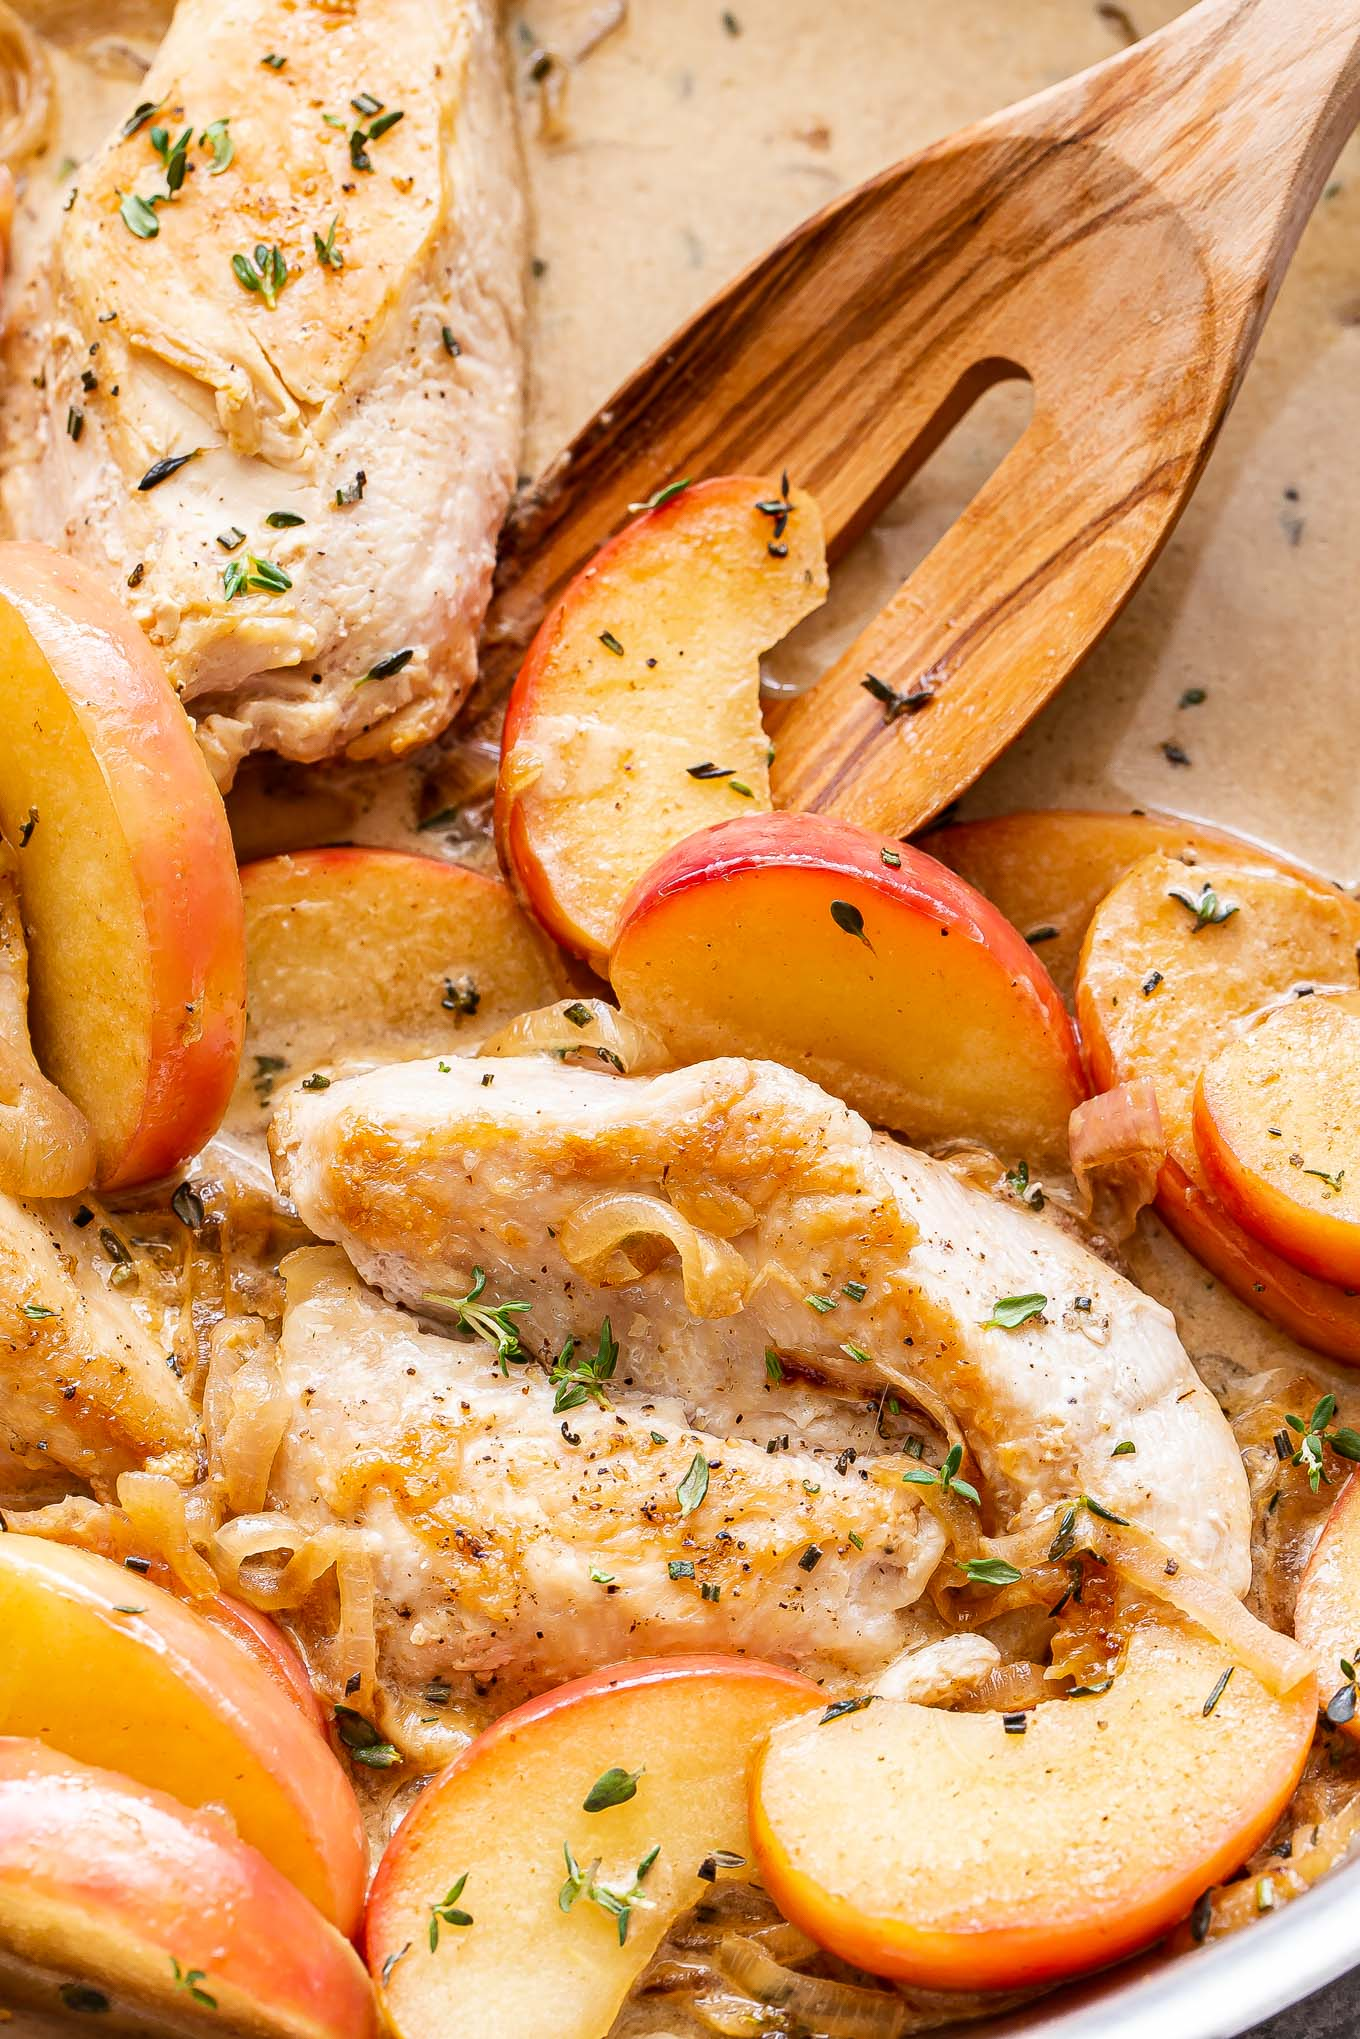 Apple cider chicken with a wooden spoon in the skillet.